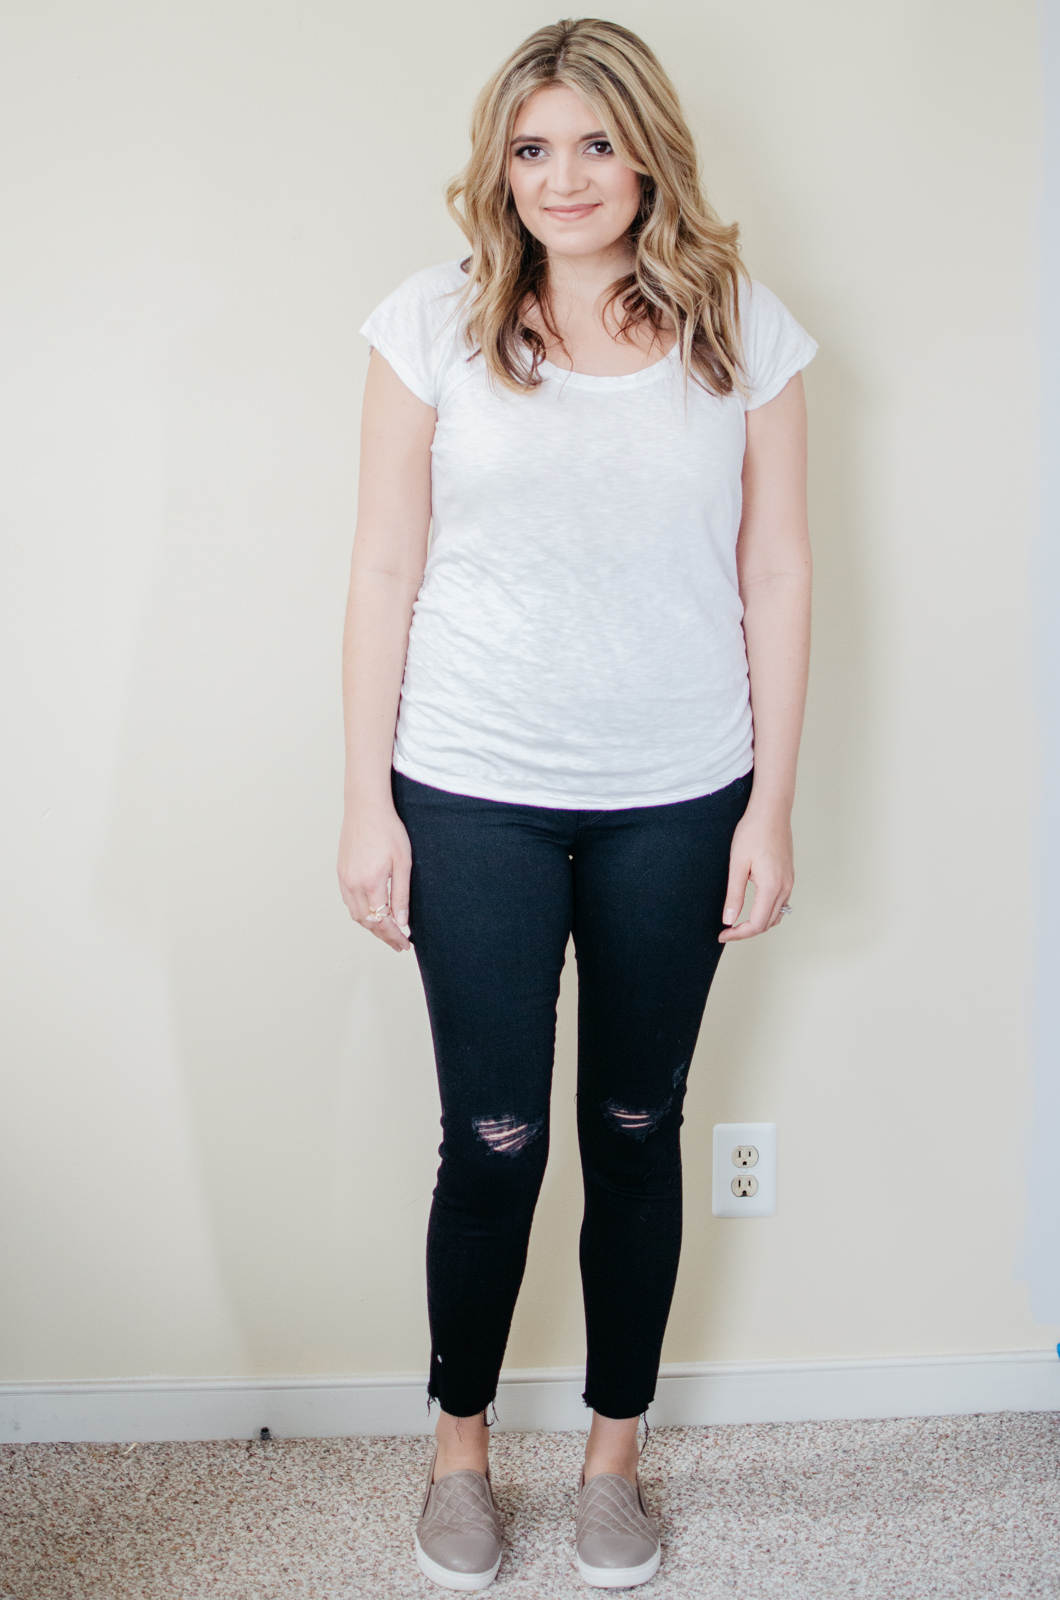 Mother maternity jeans review - Mother looker maternity | See reviews of over 15 maternity jeans brands by clicking through to this post! | bylaurenm.com